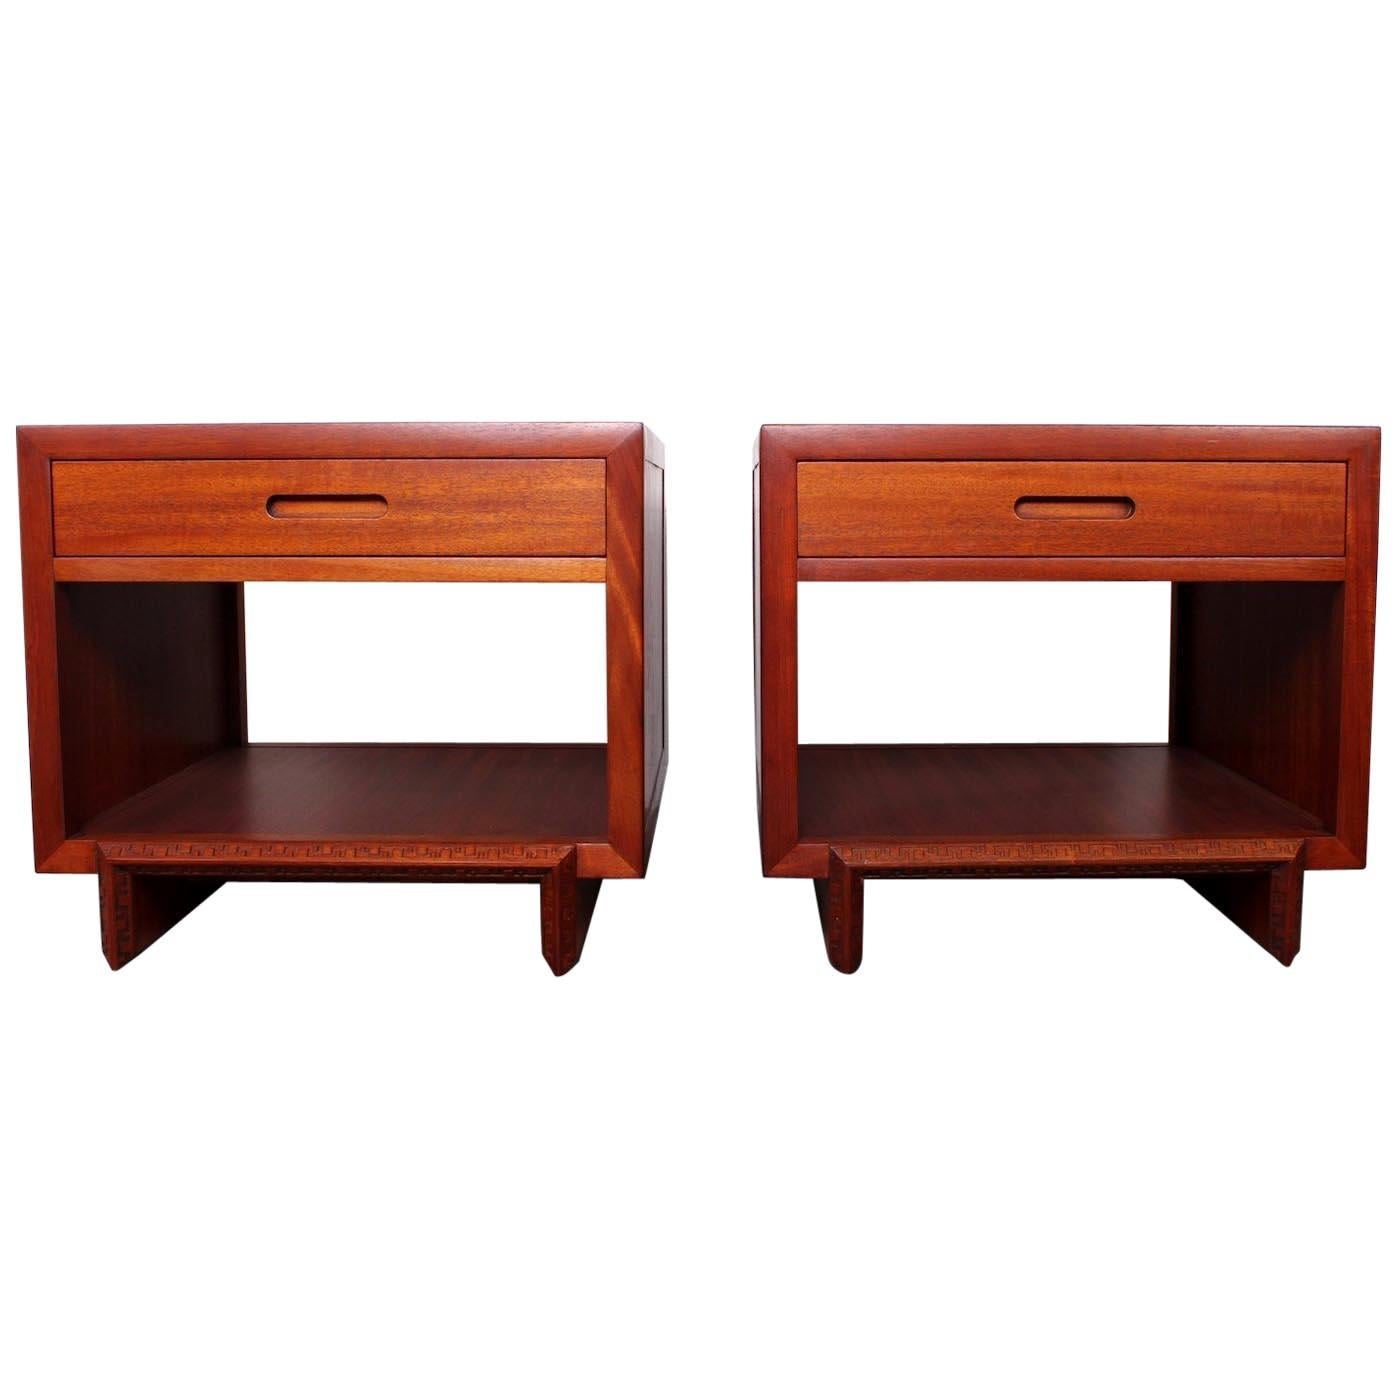 Frank Lloyd Wright Furniture Tables Chairs Sofas More 65 For